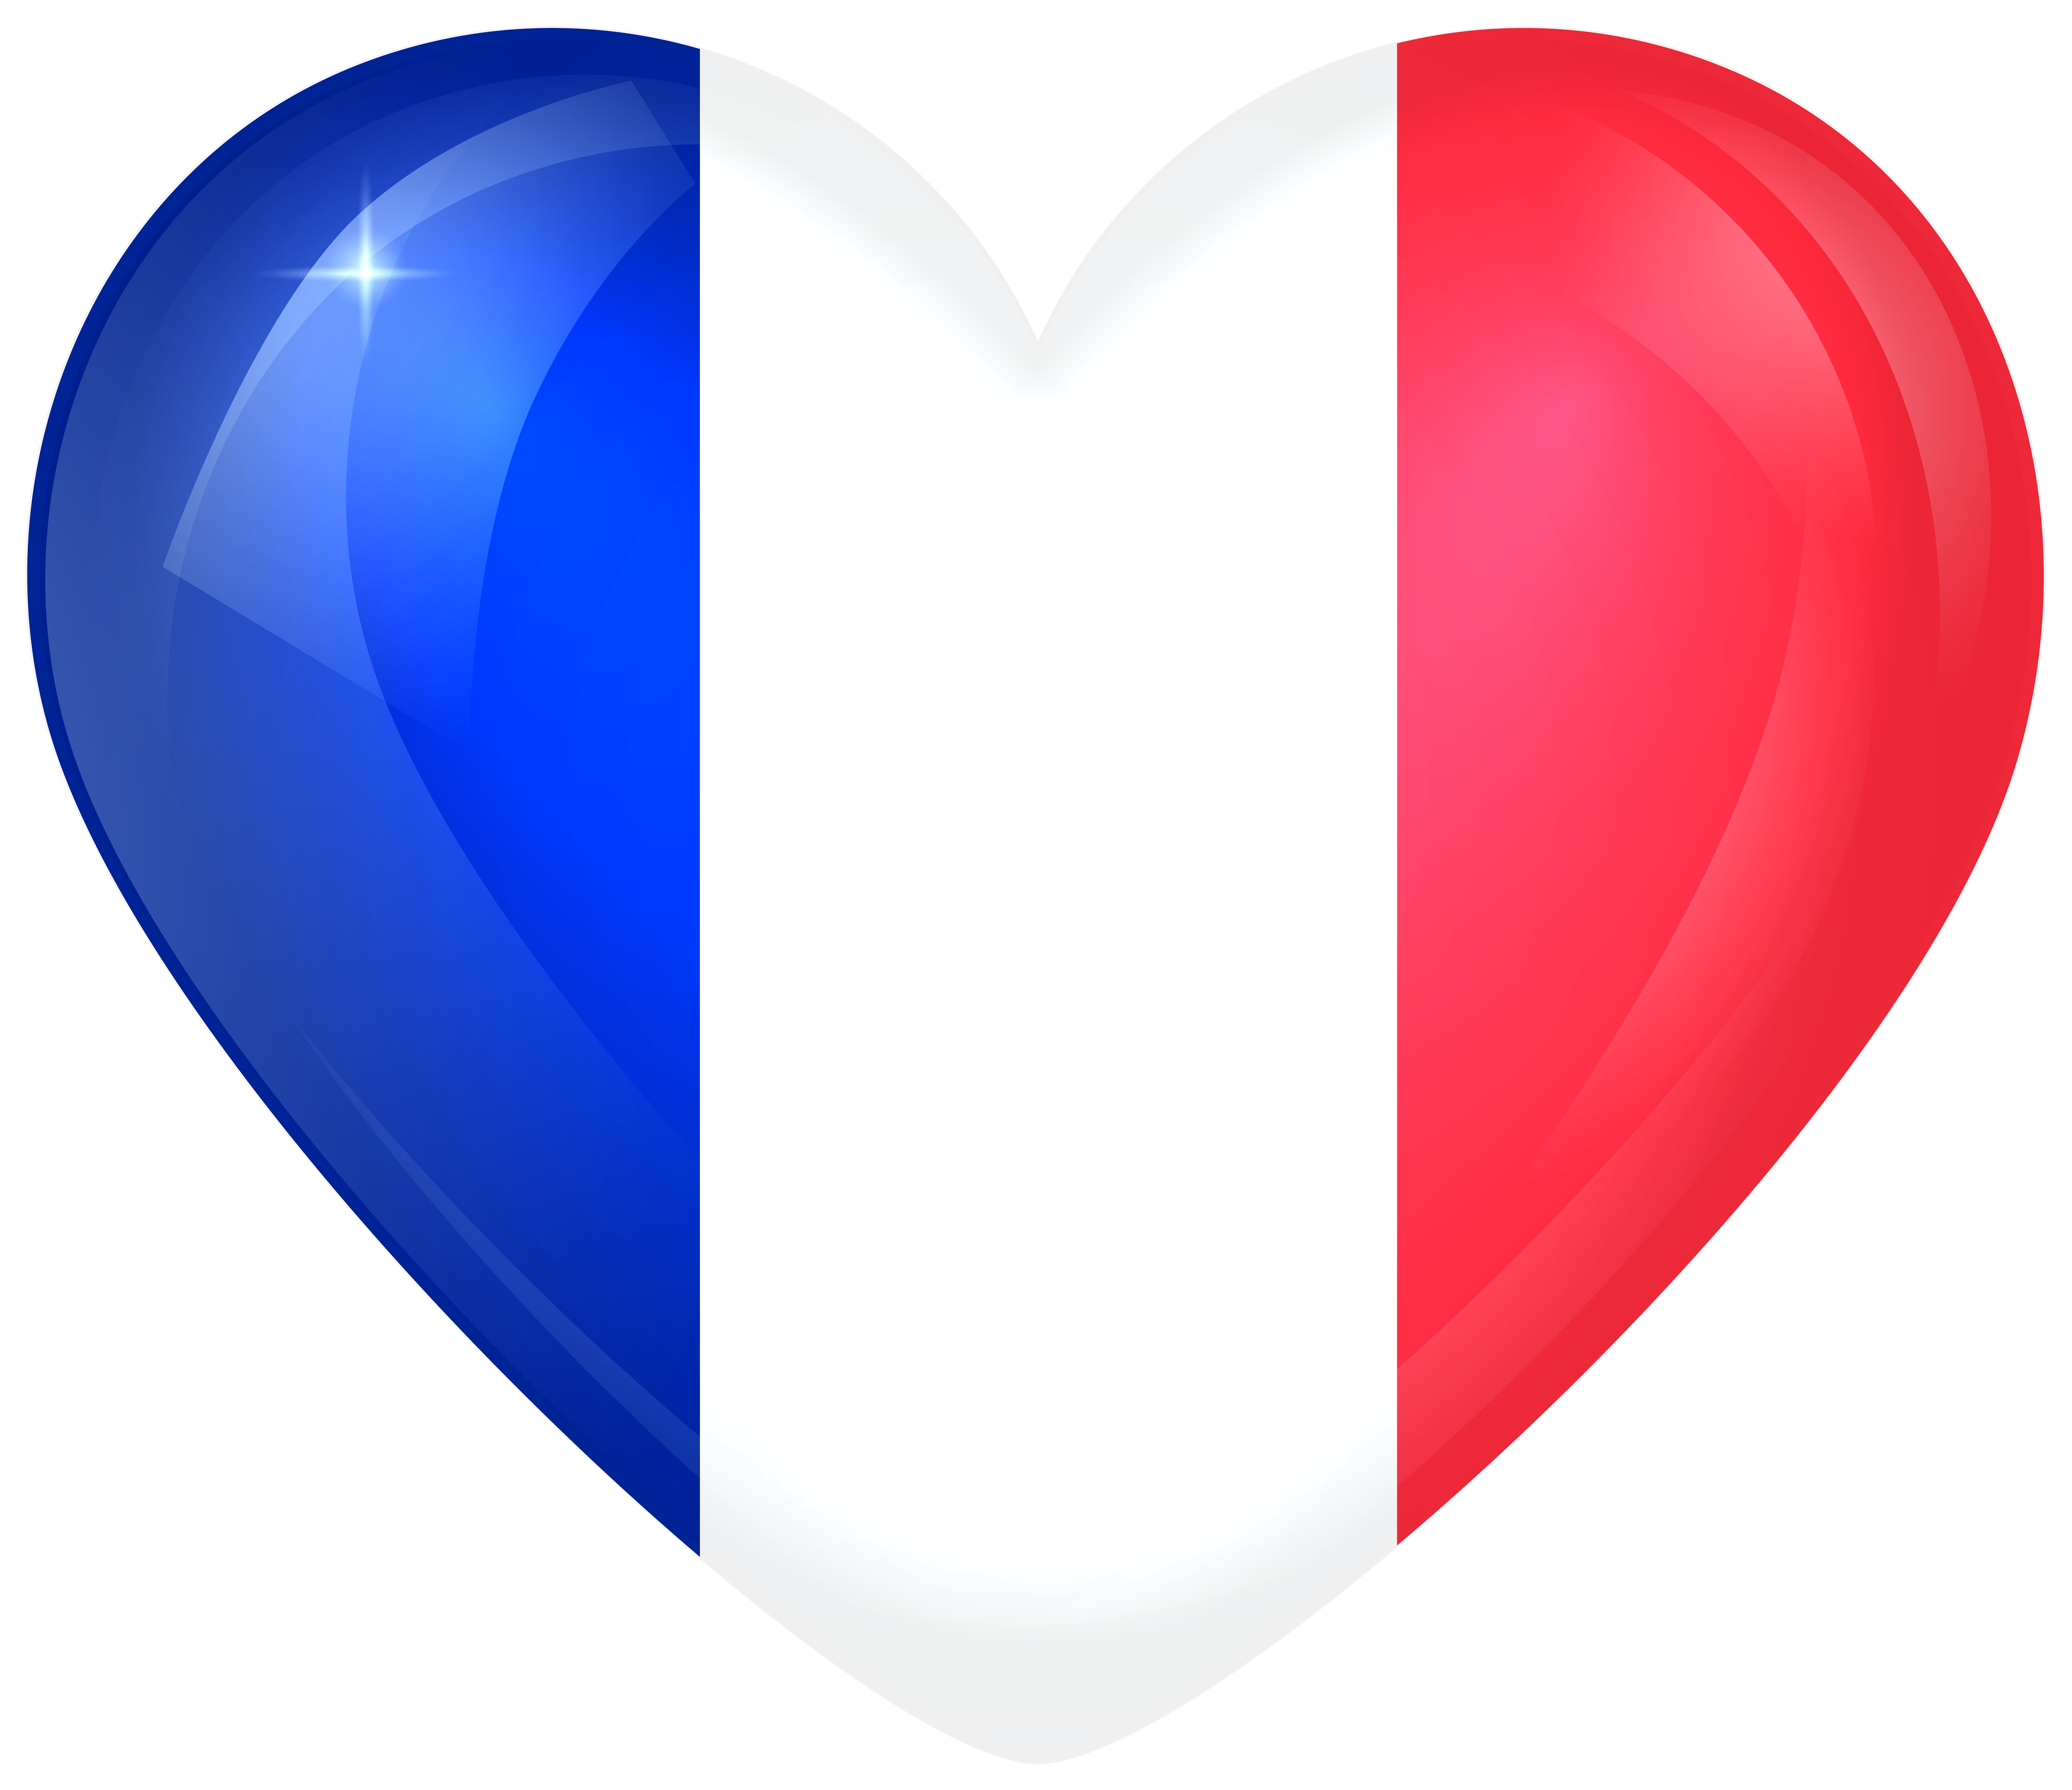 France large gallery yopriceville. Heart clipart flag